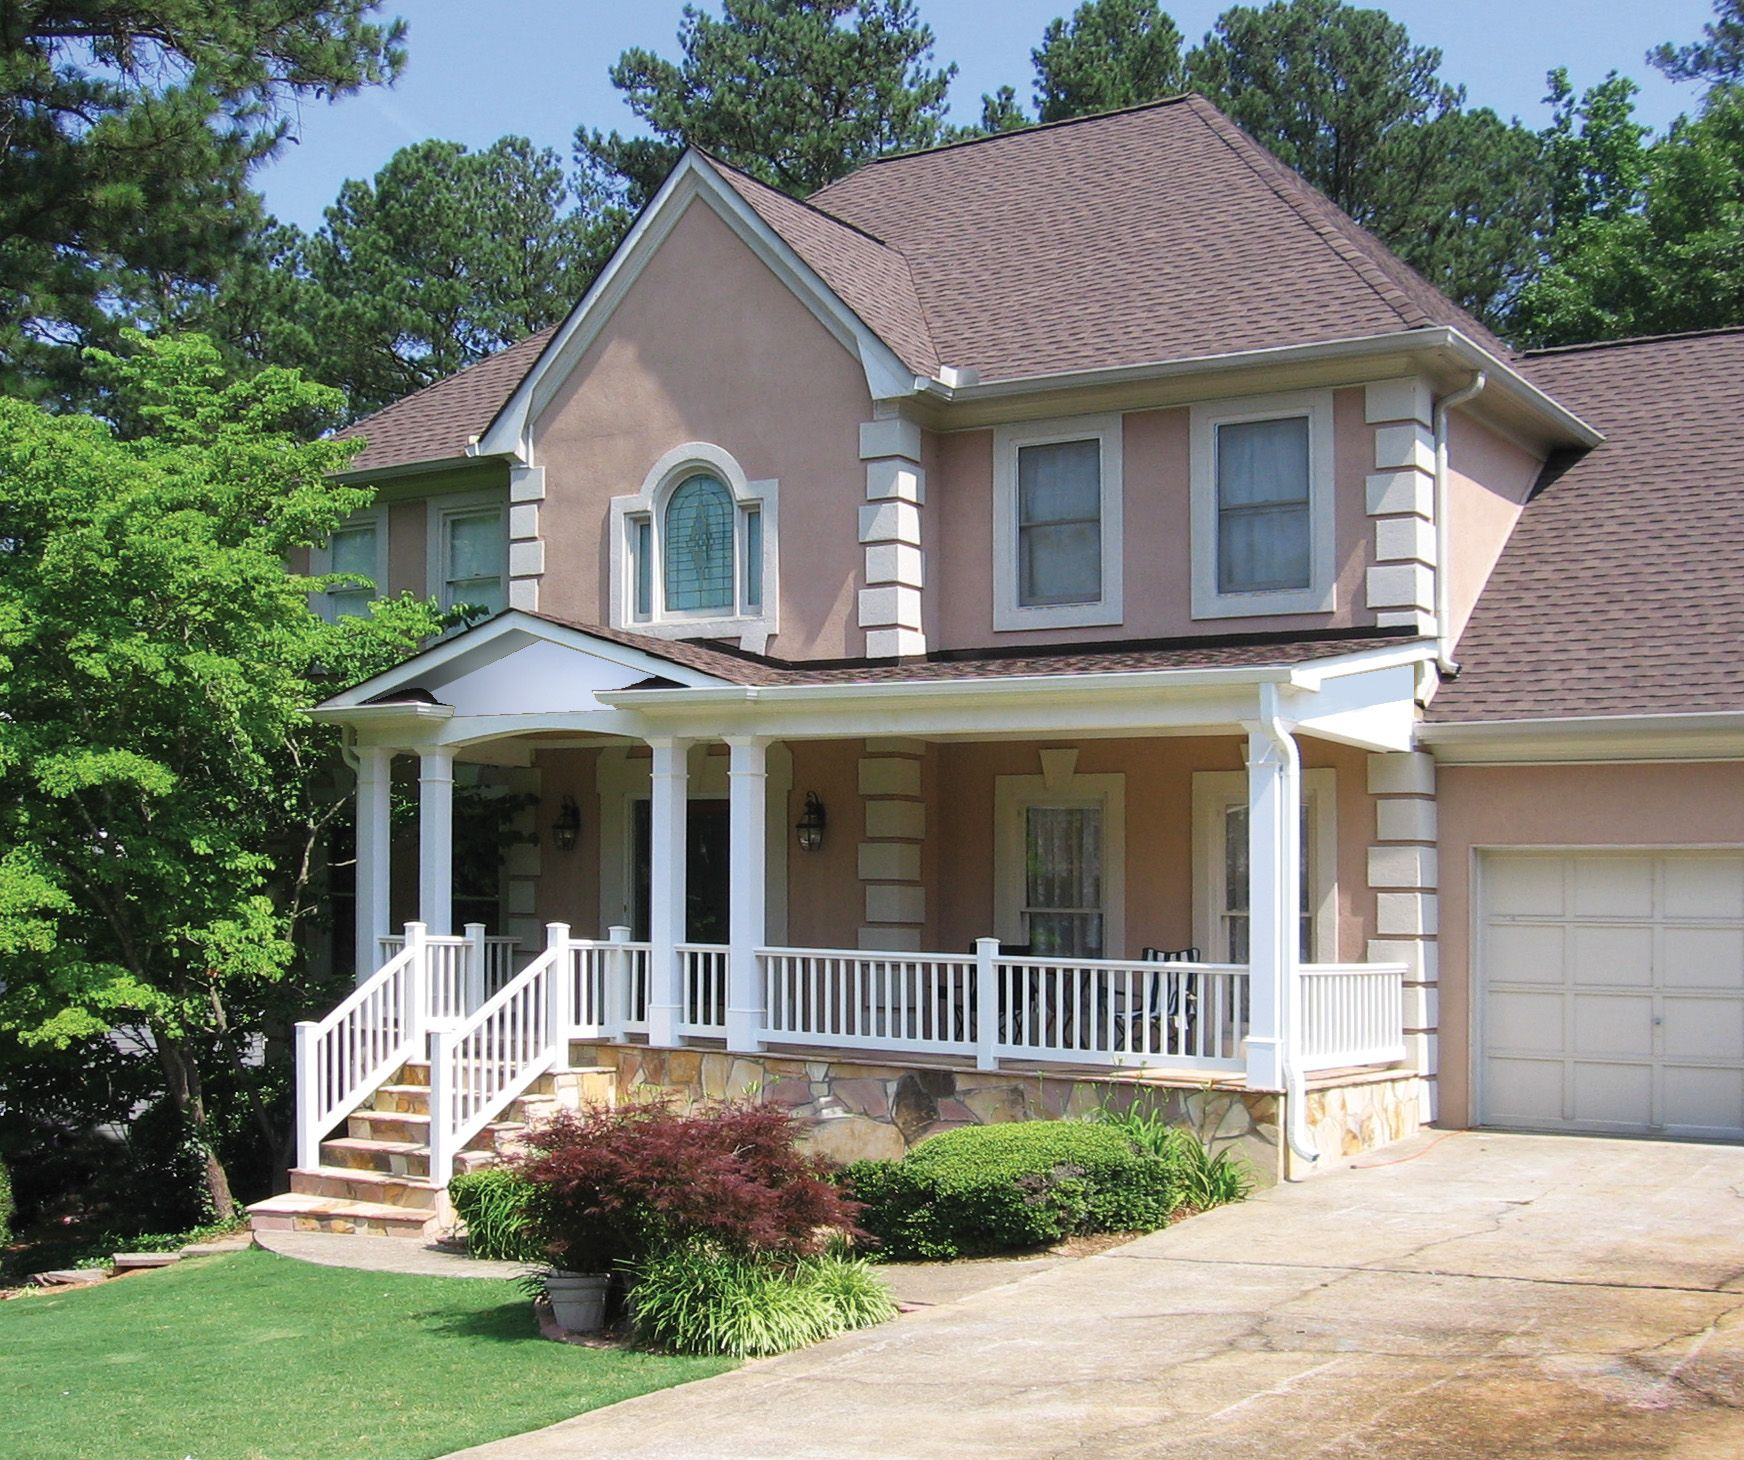 Front Porch Designs For Houses: New Front Porch On Stucco Home, Atlanta Area. This Project